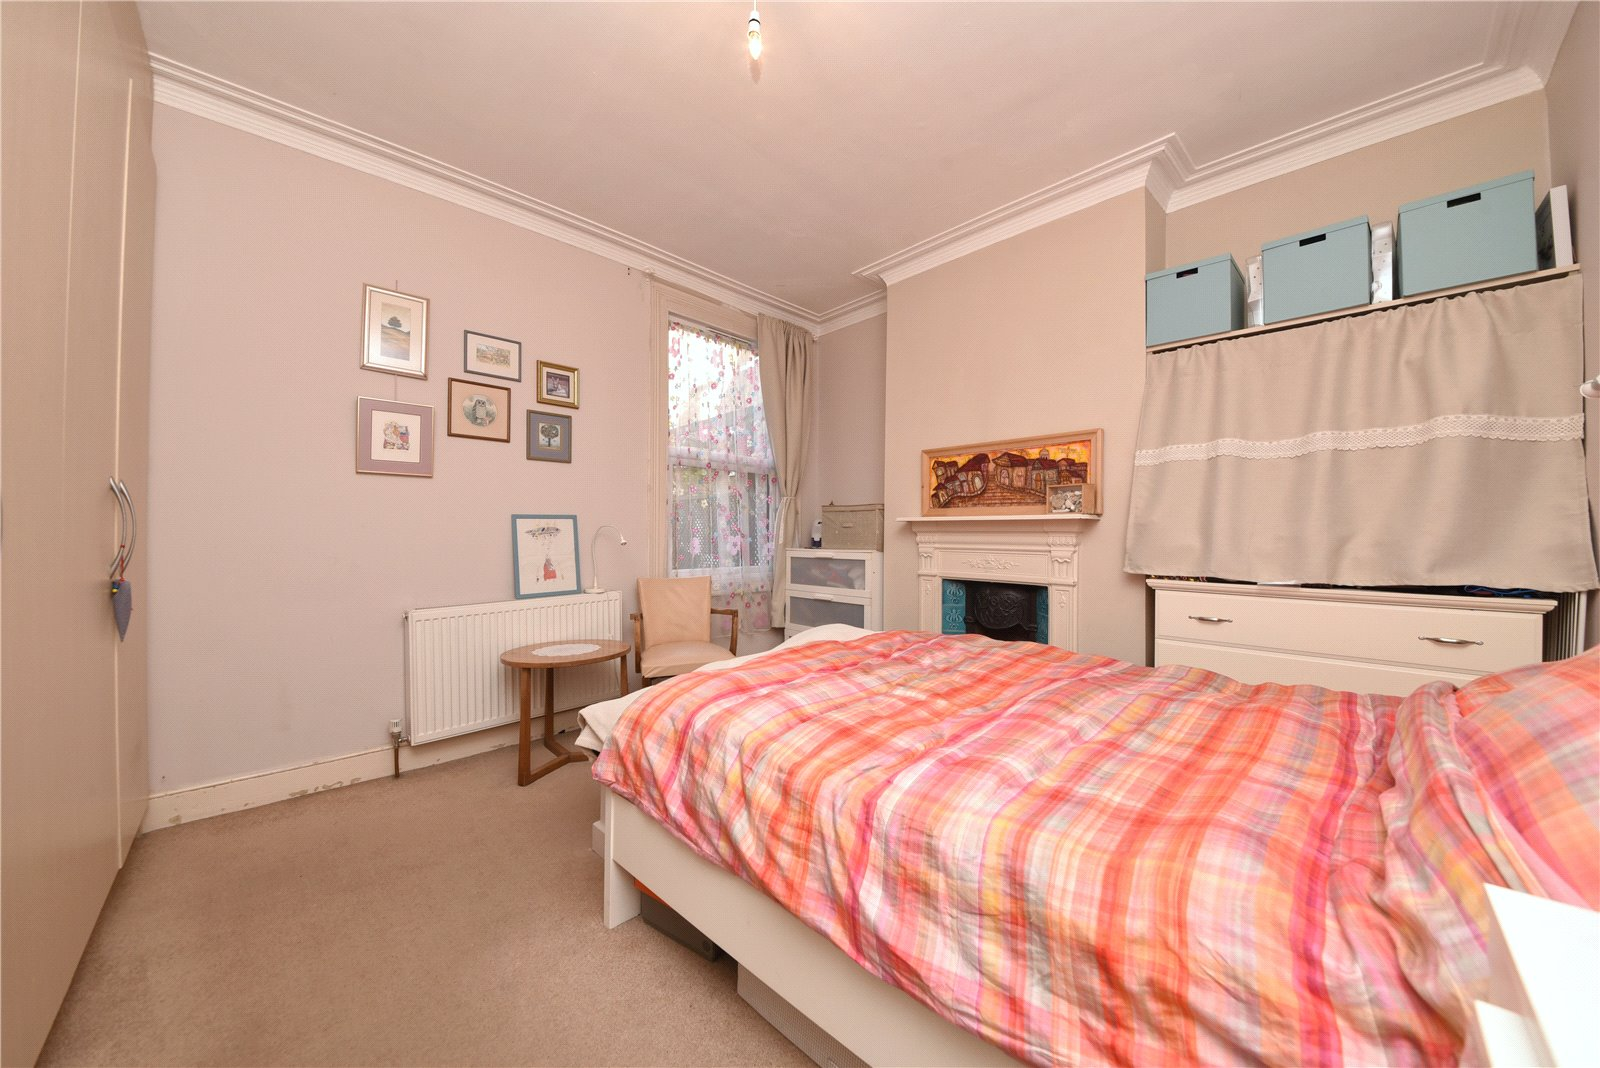 2 bed apartment for sale in East Finchley, N2 0SX  - Property Image 6